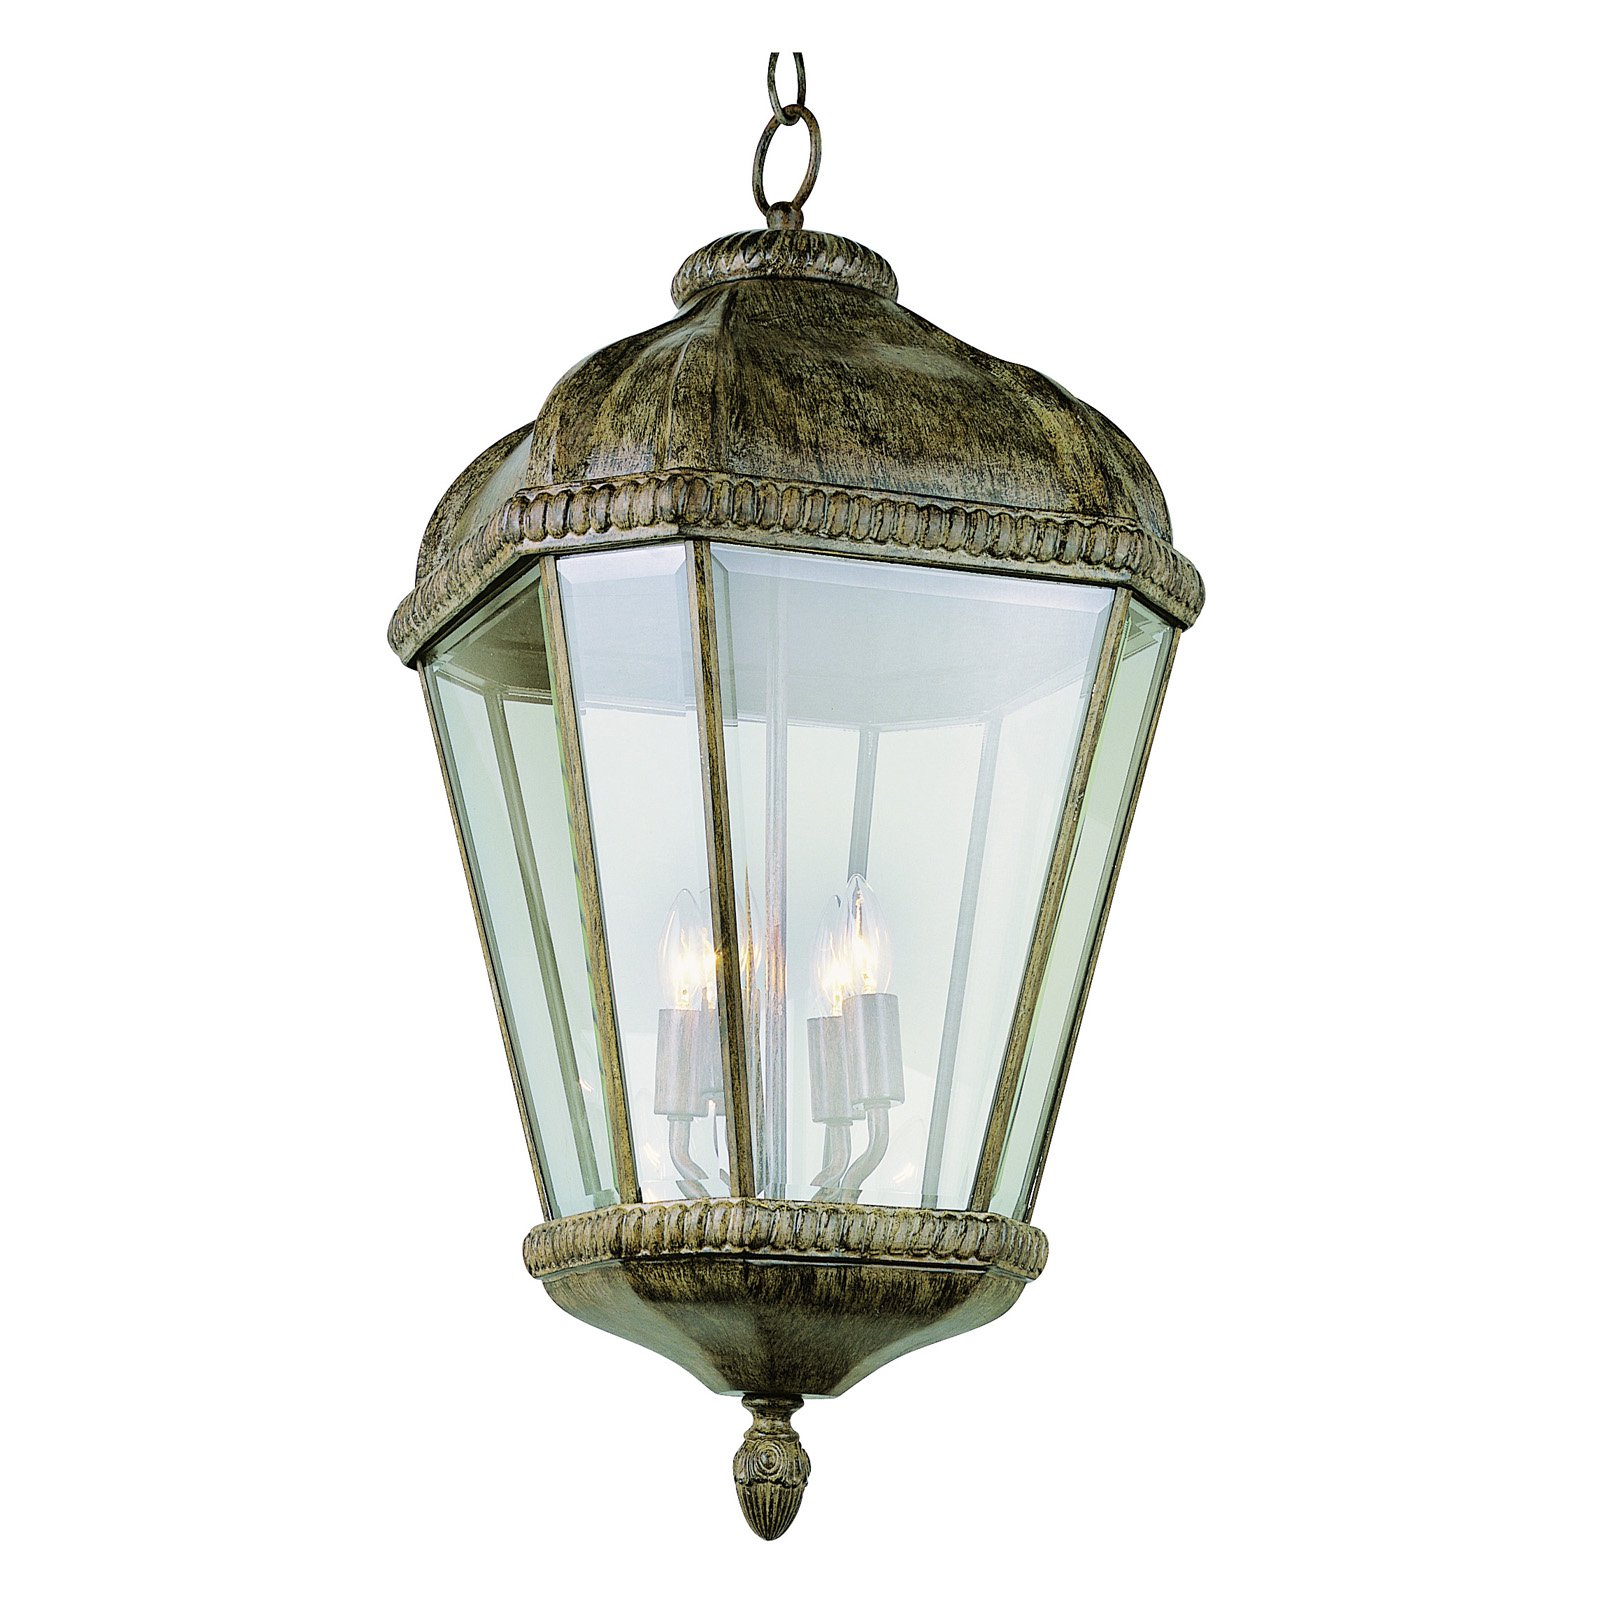 Trans Globe 5156 BRT Hanging Lantern Burnished Rust 13W in. by Trans Globe Lighting